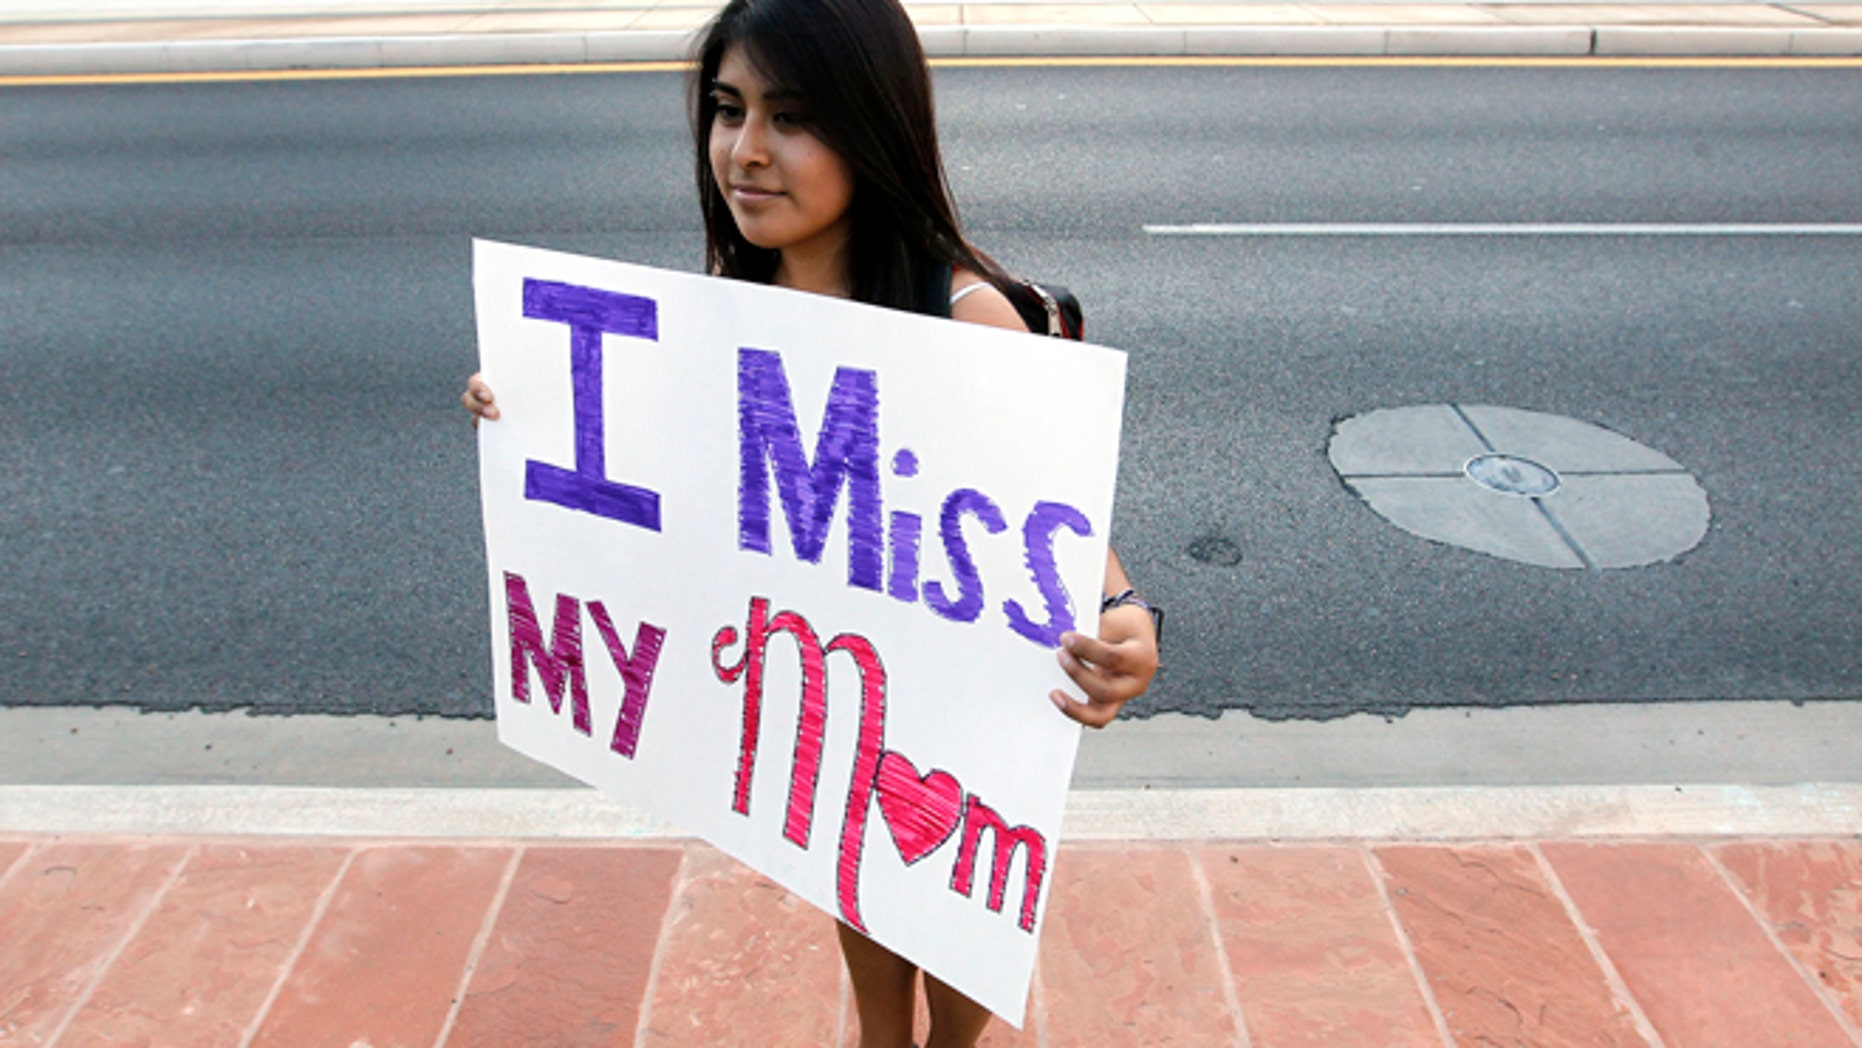 At a protest on Sept. 19, Cynthia Diaz holds up a sign as she joins dozens who rally in front of  U.S. Immigration and Customs Enforcement building, a day after a portion of Arizona's immigration law took effect in Phoenix.